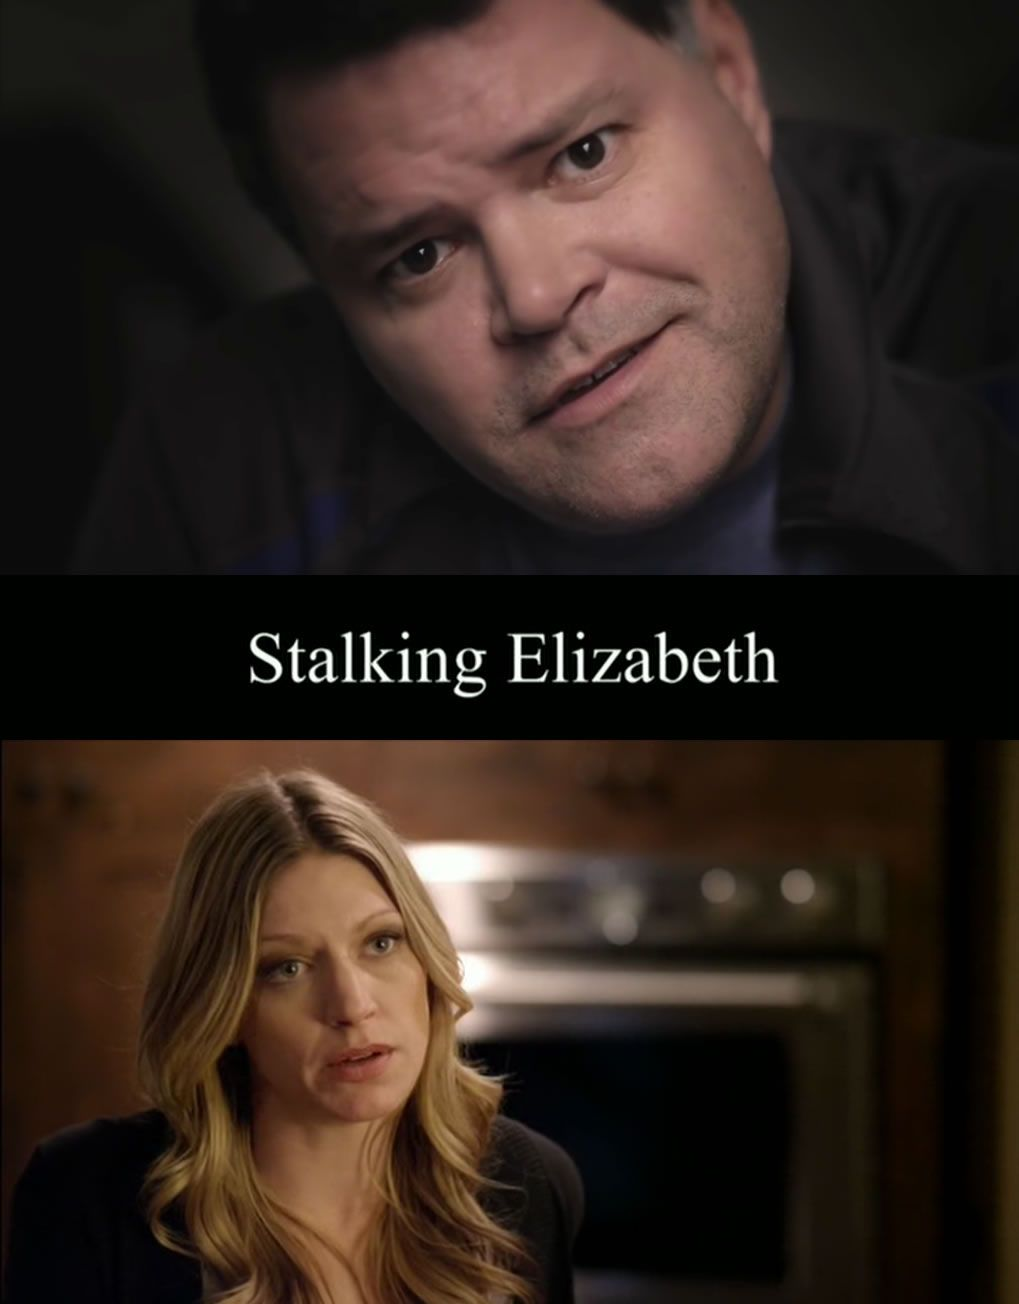 Stalking Elizabeth (2014) Jes Macallan is the mum returning